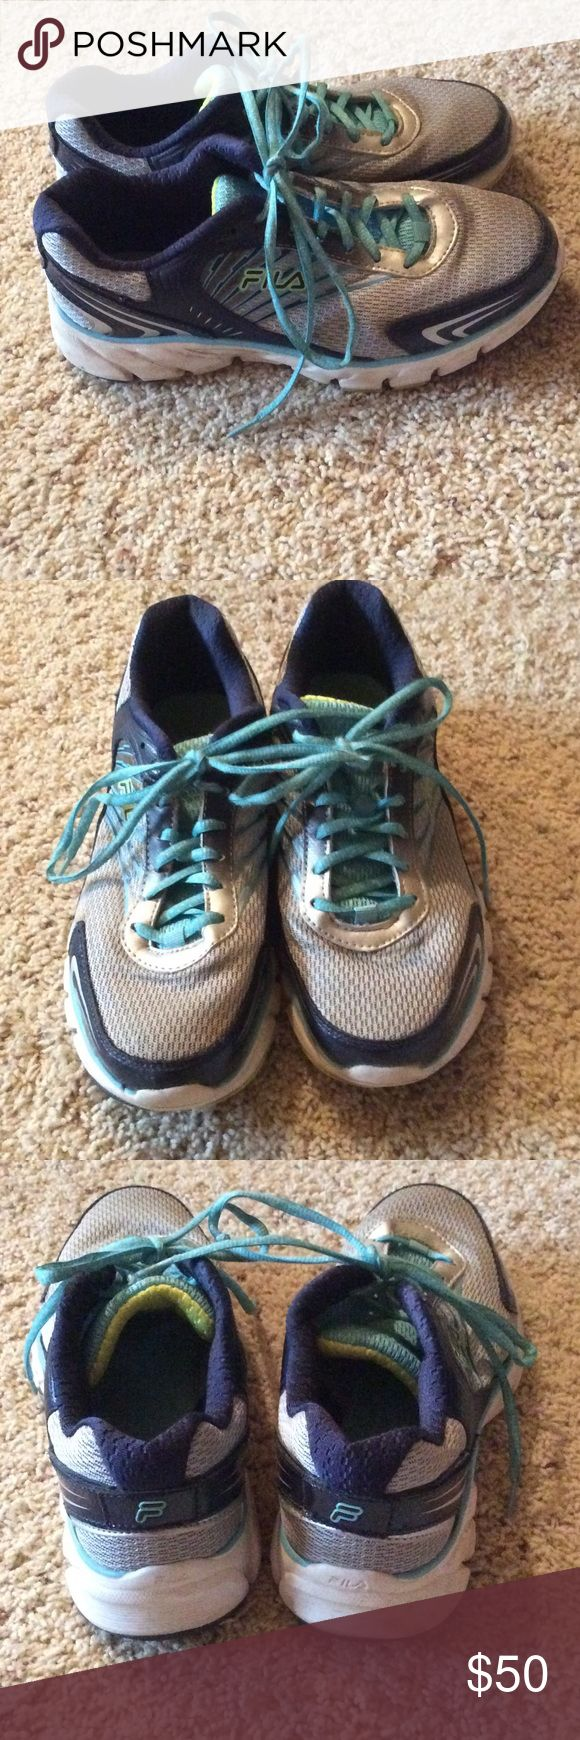 Fila running shoes Used a few times but still in great condition Fila Shoes Athletic Shoes